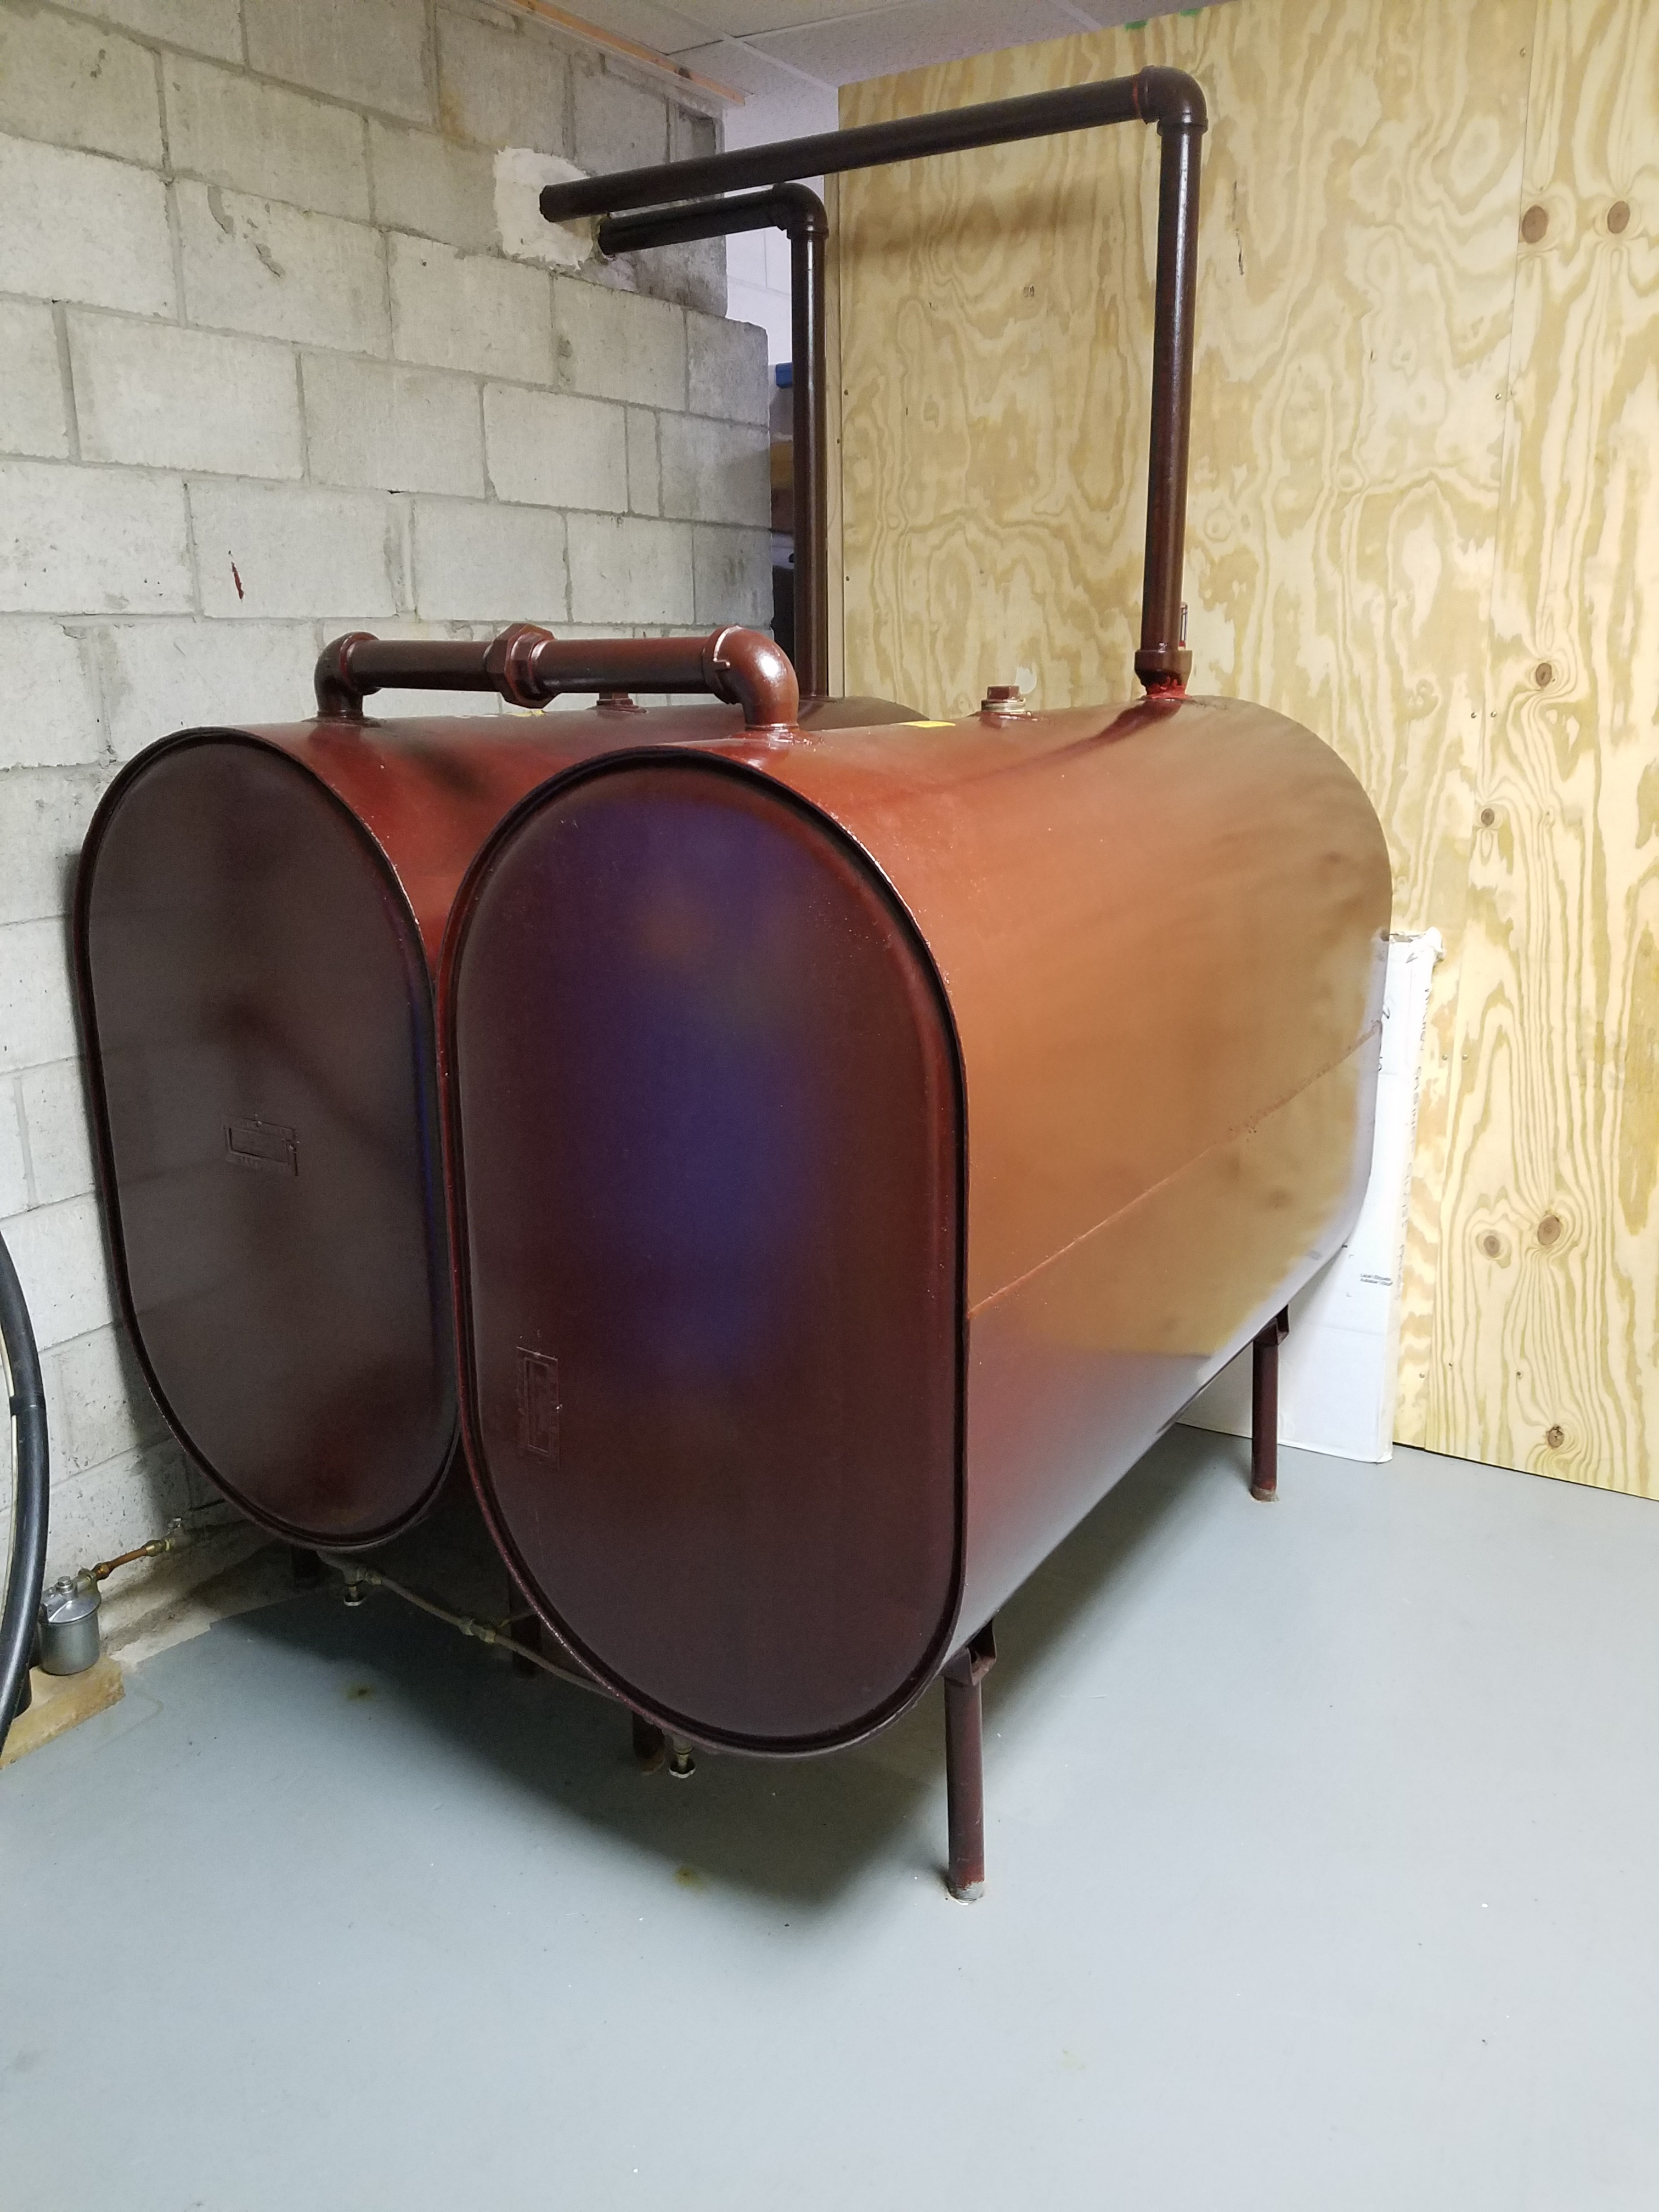 2 275 Gallon Heating Oil Tanks Questions Heating Help The Wall